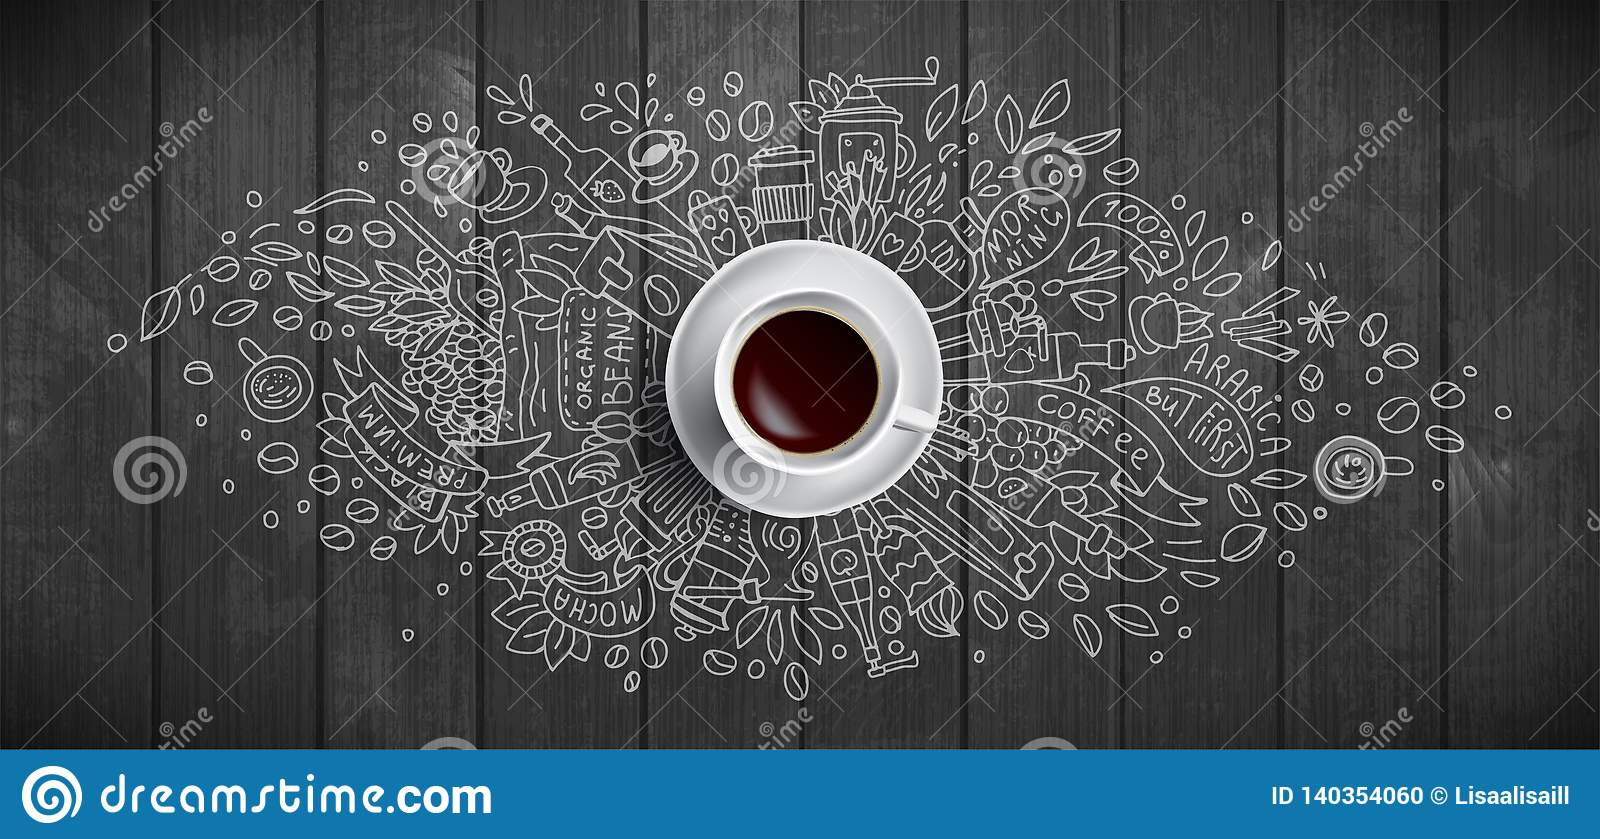 Coffee concept on wooden background - white coffee cup, top view with doodle illustration about coffee, beans, morning